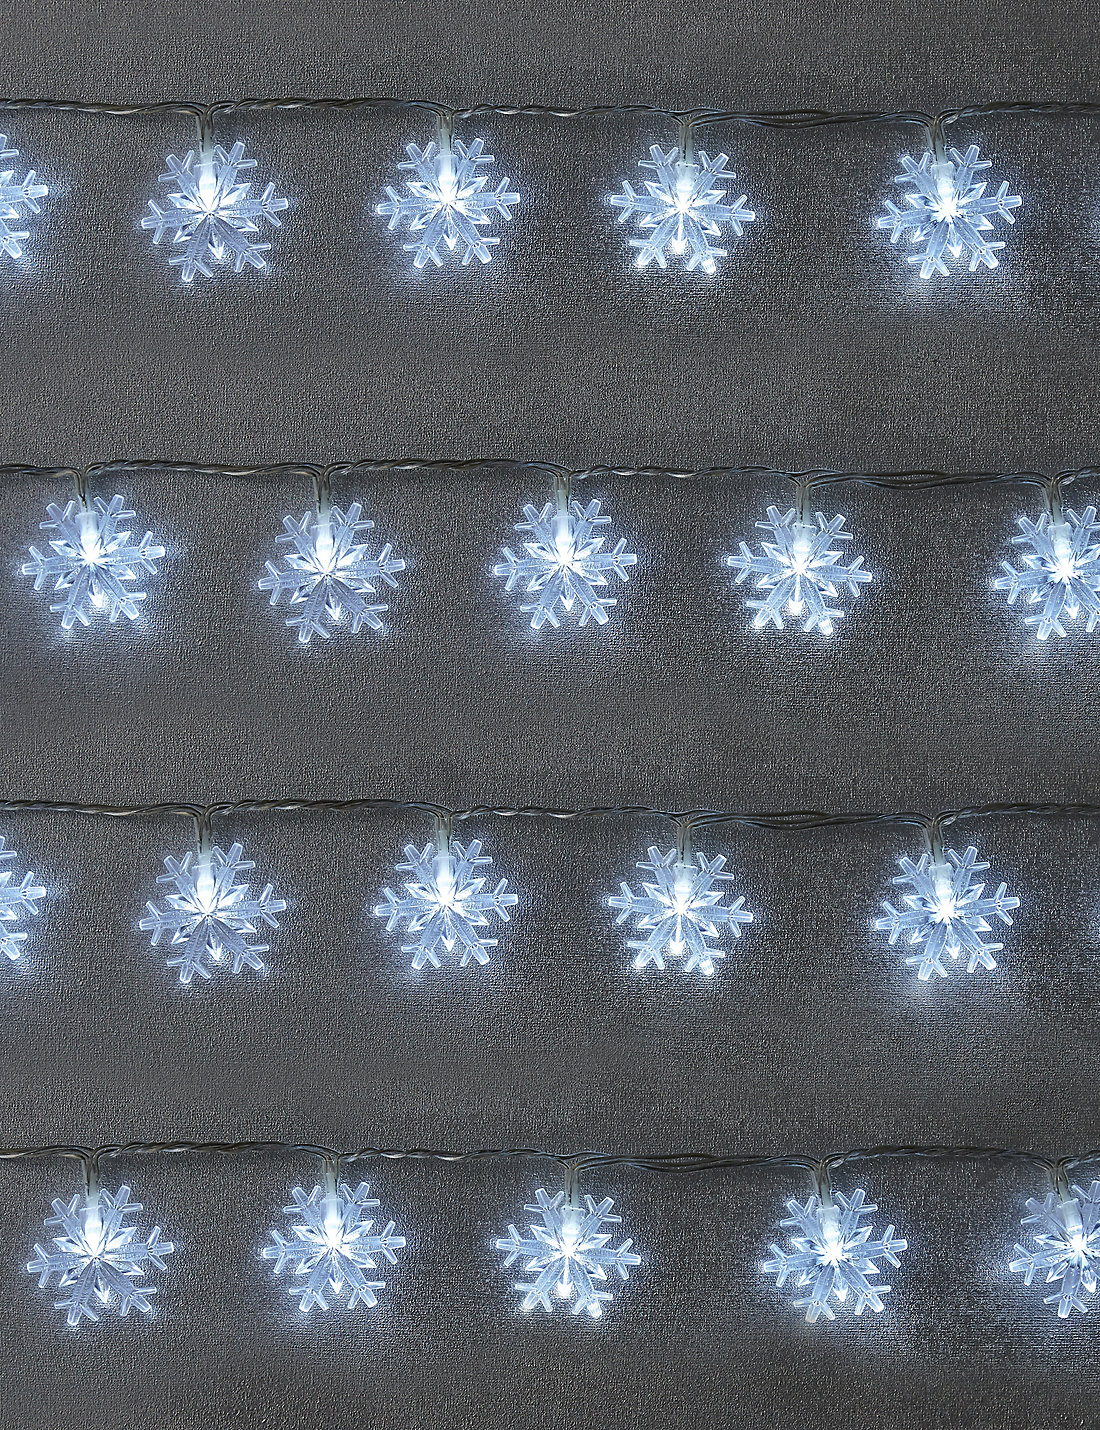 Snowflake Outdoor Lights Pick of the christmas lights fashionmommys blog 80 snowflake outdoor lights 35 click to visit ms workwithnaturefo